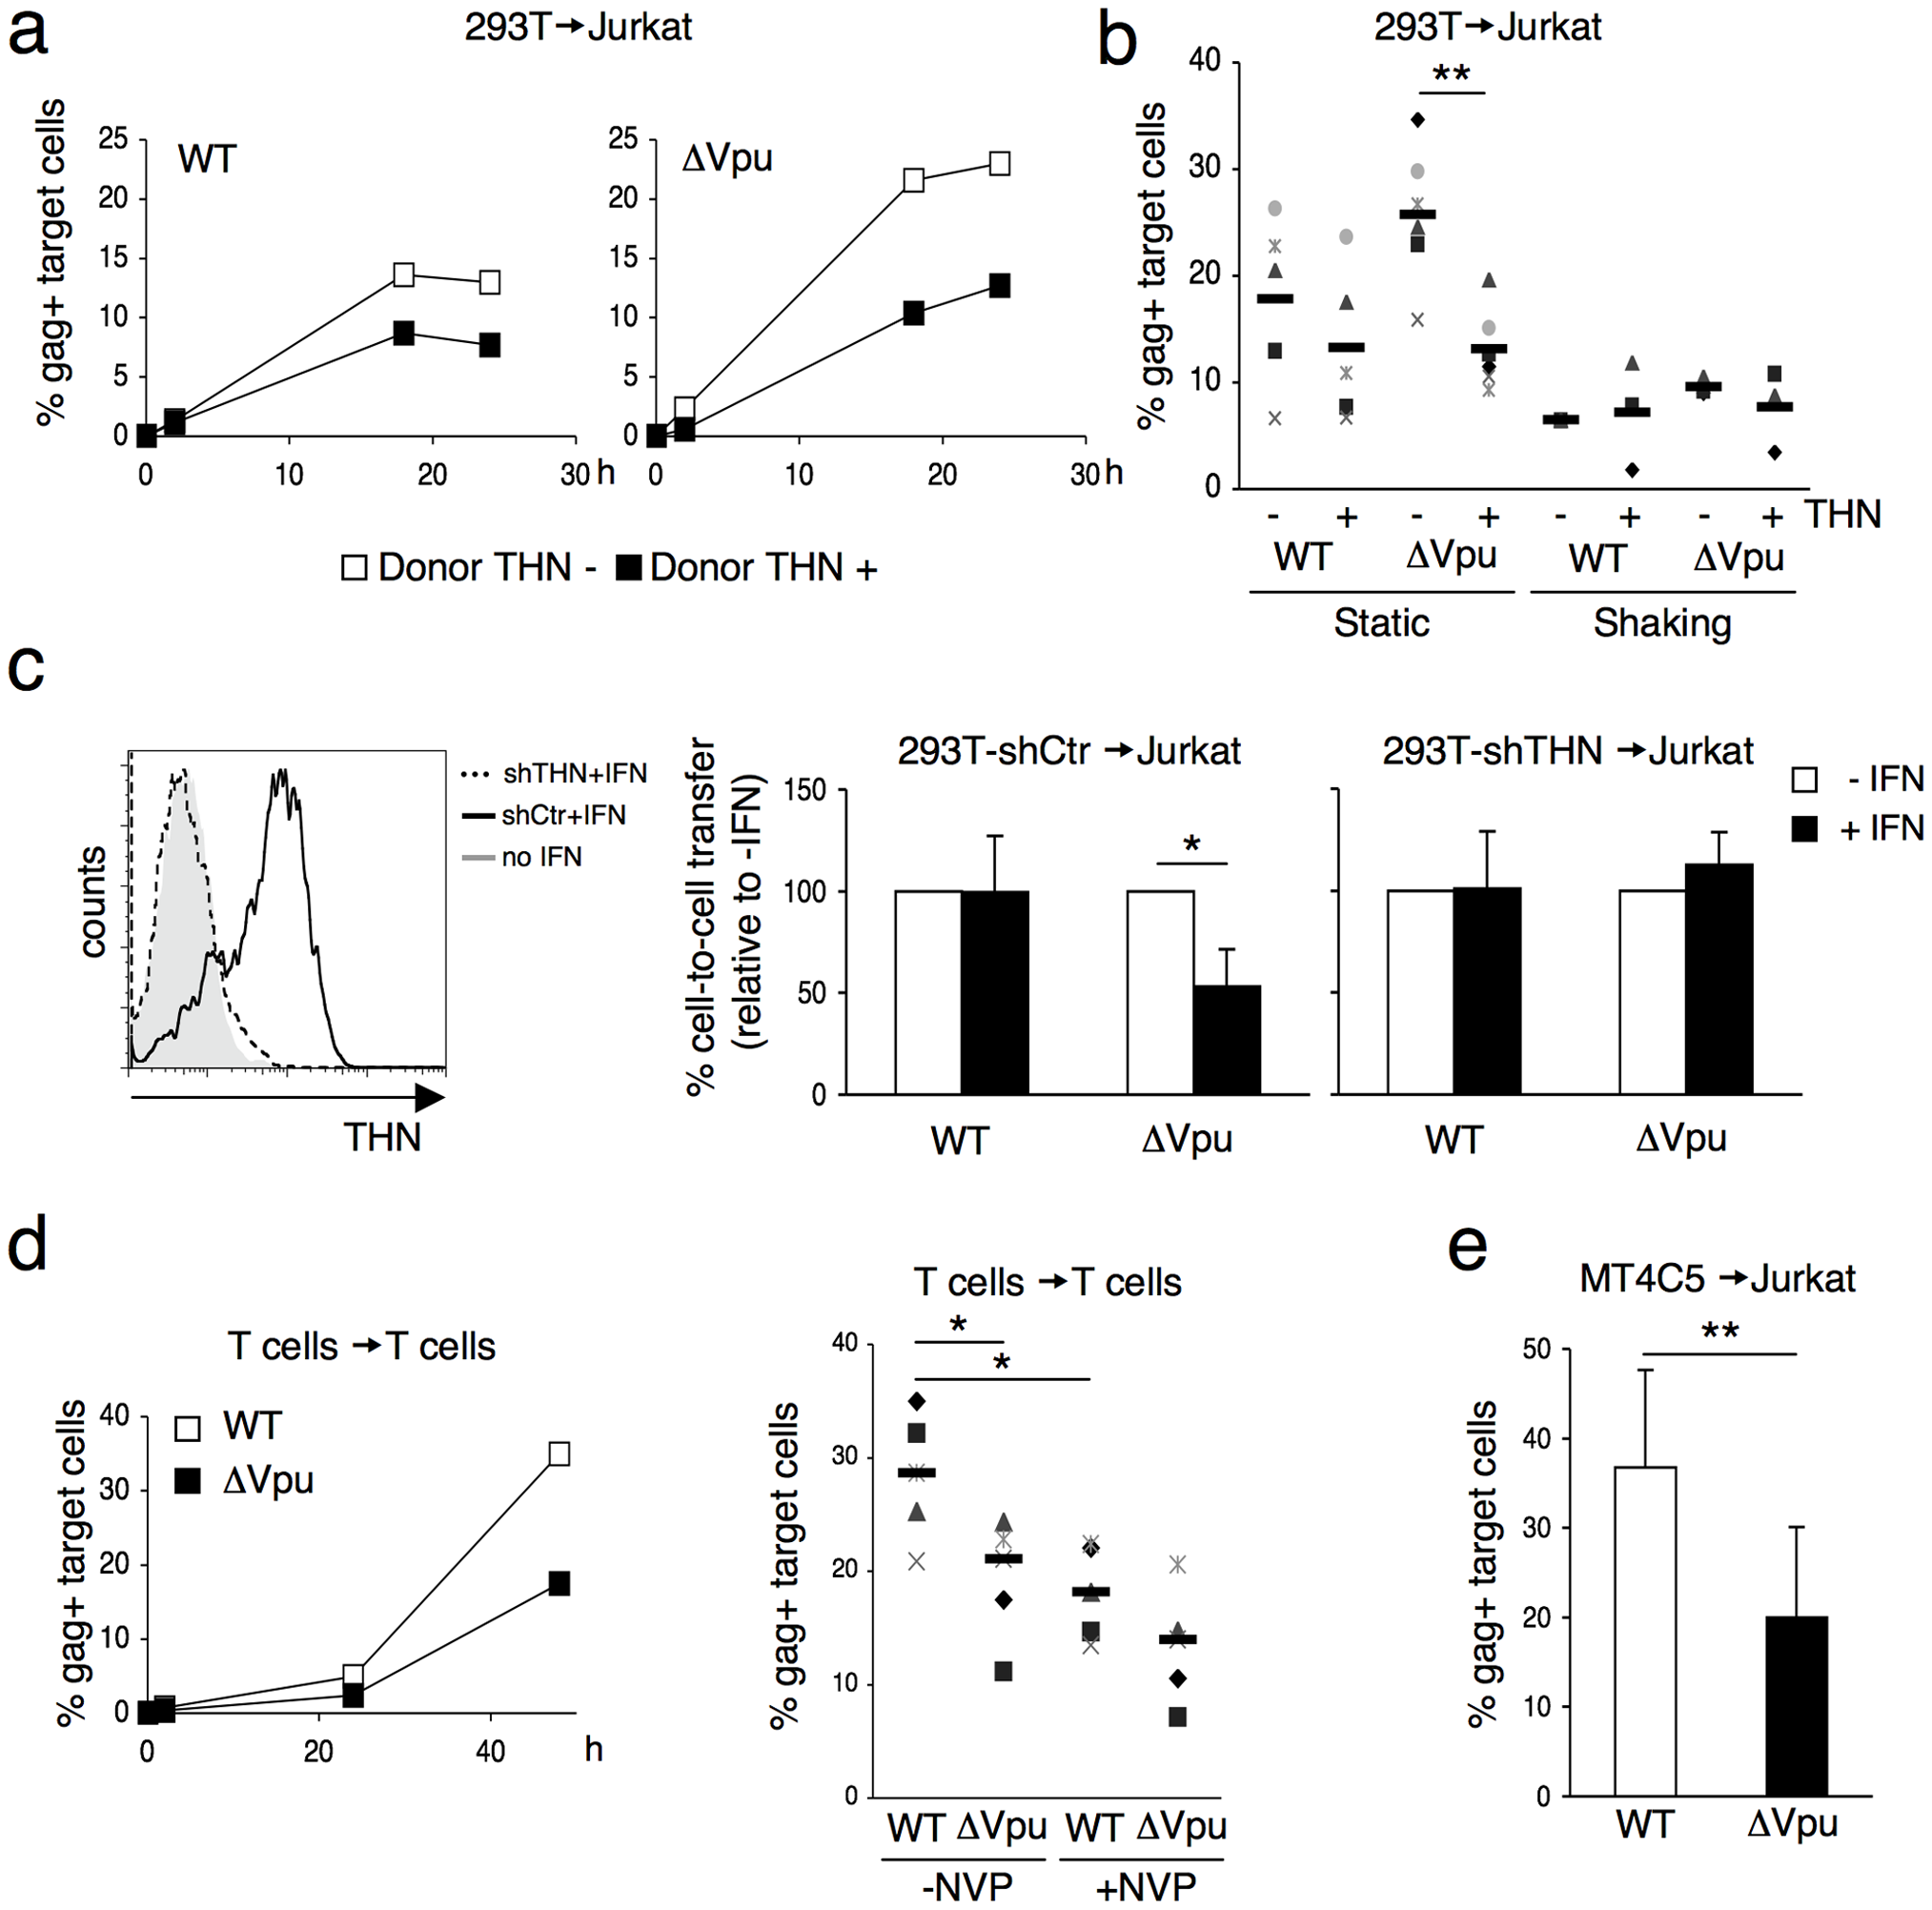 Tetherin reduces HIV cell-to-cell transmission from 293T and primary T cells.